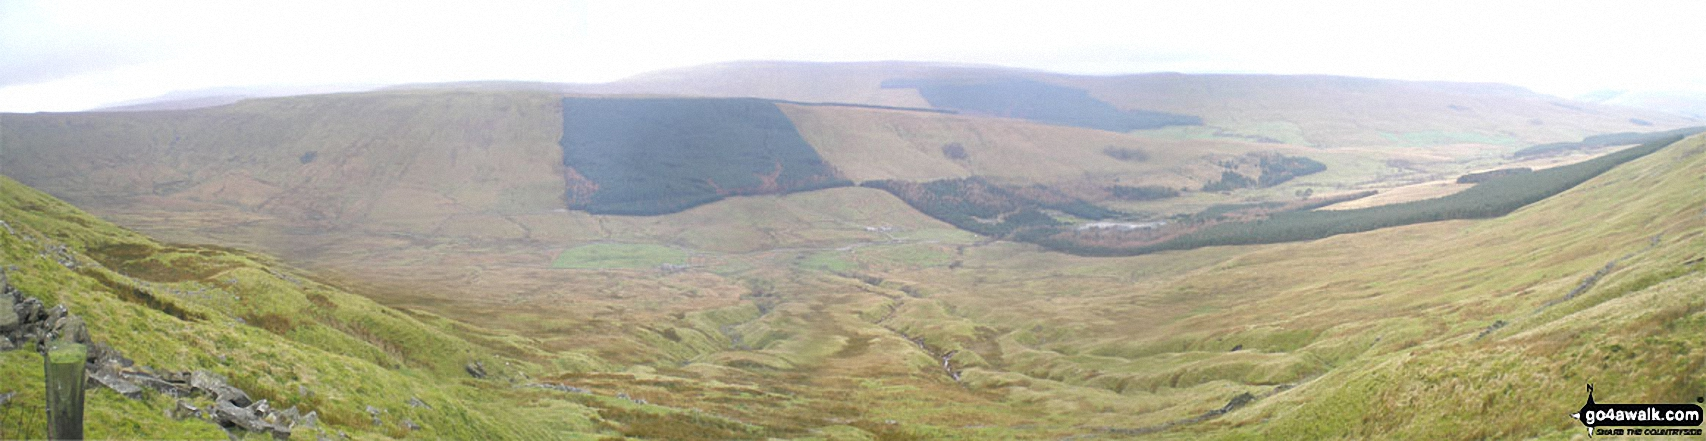 Widdale from The Pennine Way on the northern lower slopes of Dodd Fell Hill